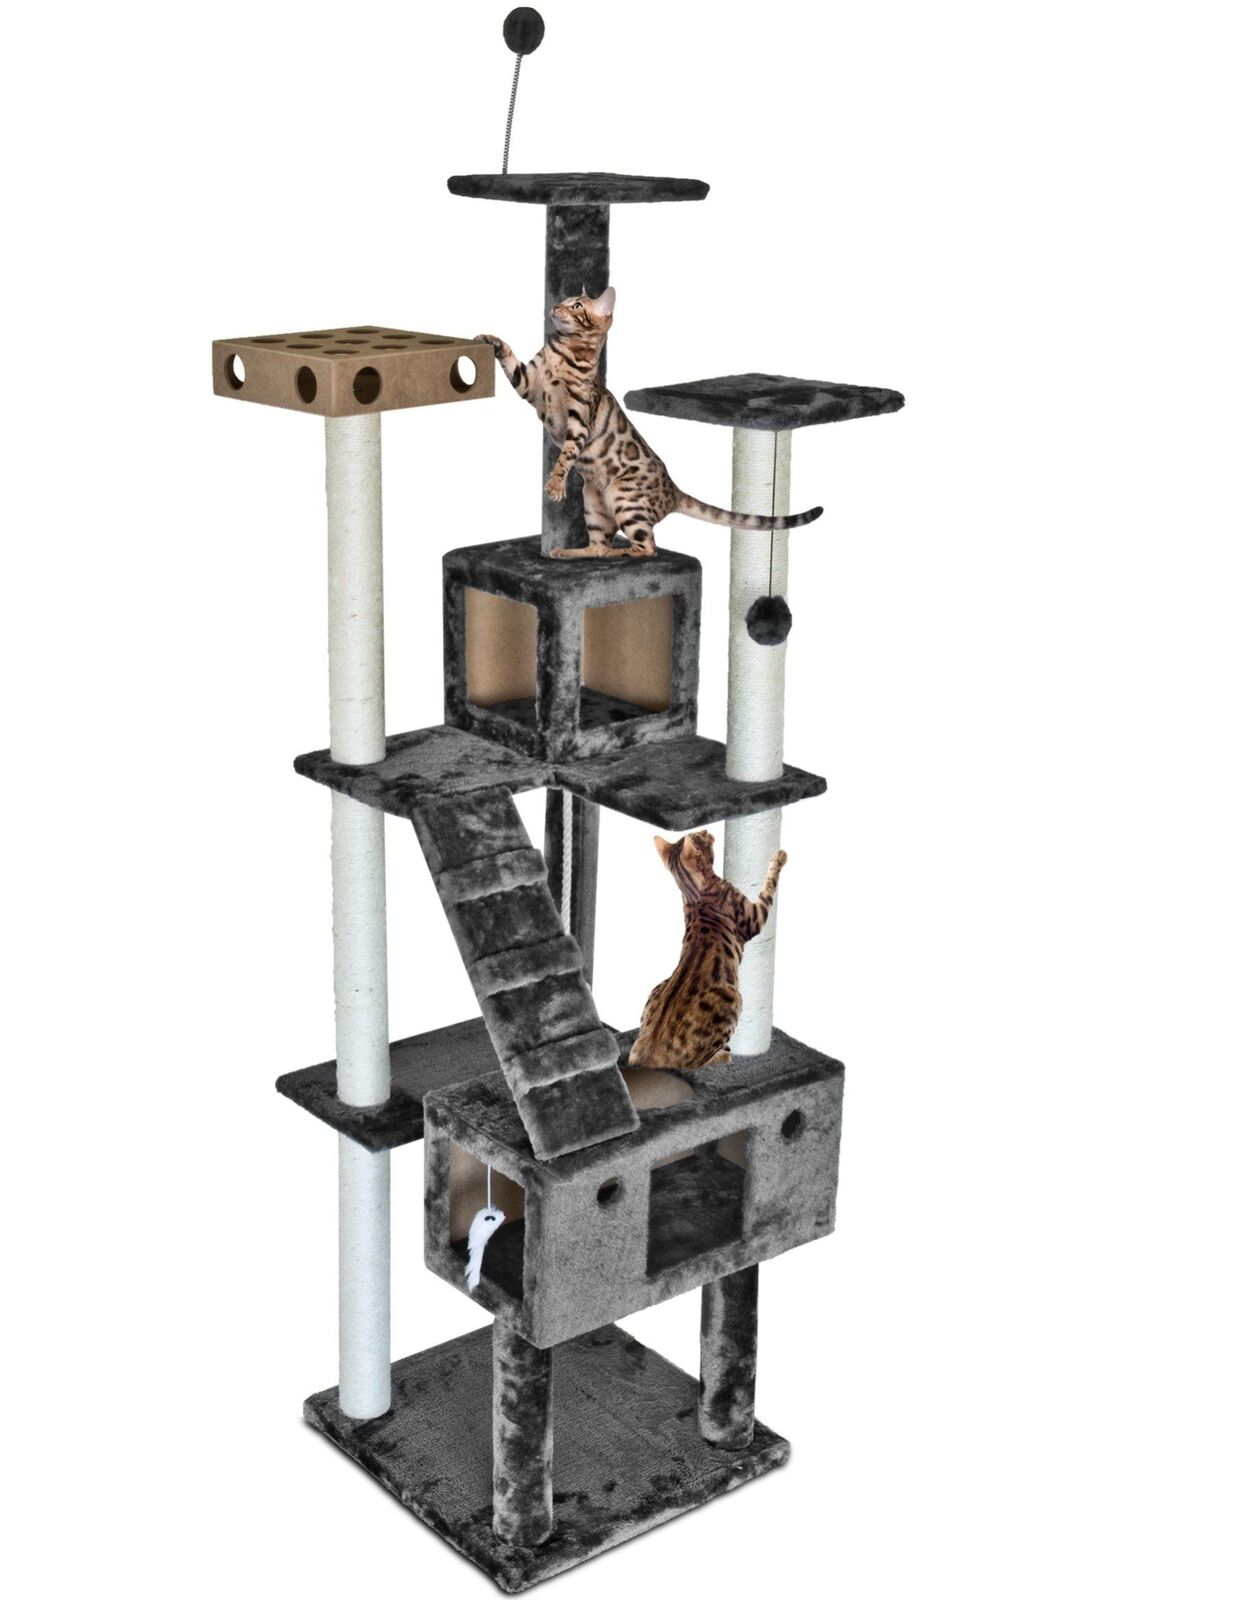 Large Cat Tree House Kitten Furniture Playground Hang Ball Mouse Toy Stret ng